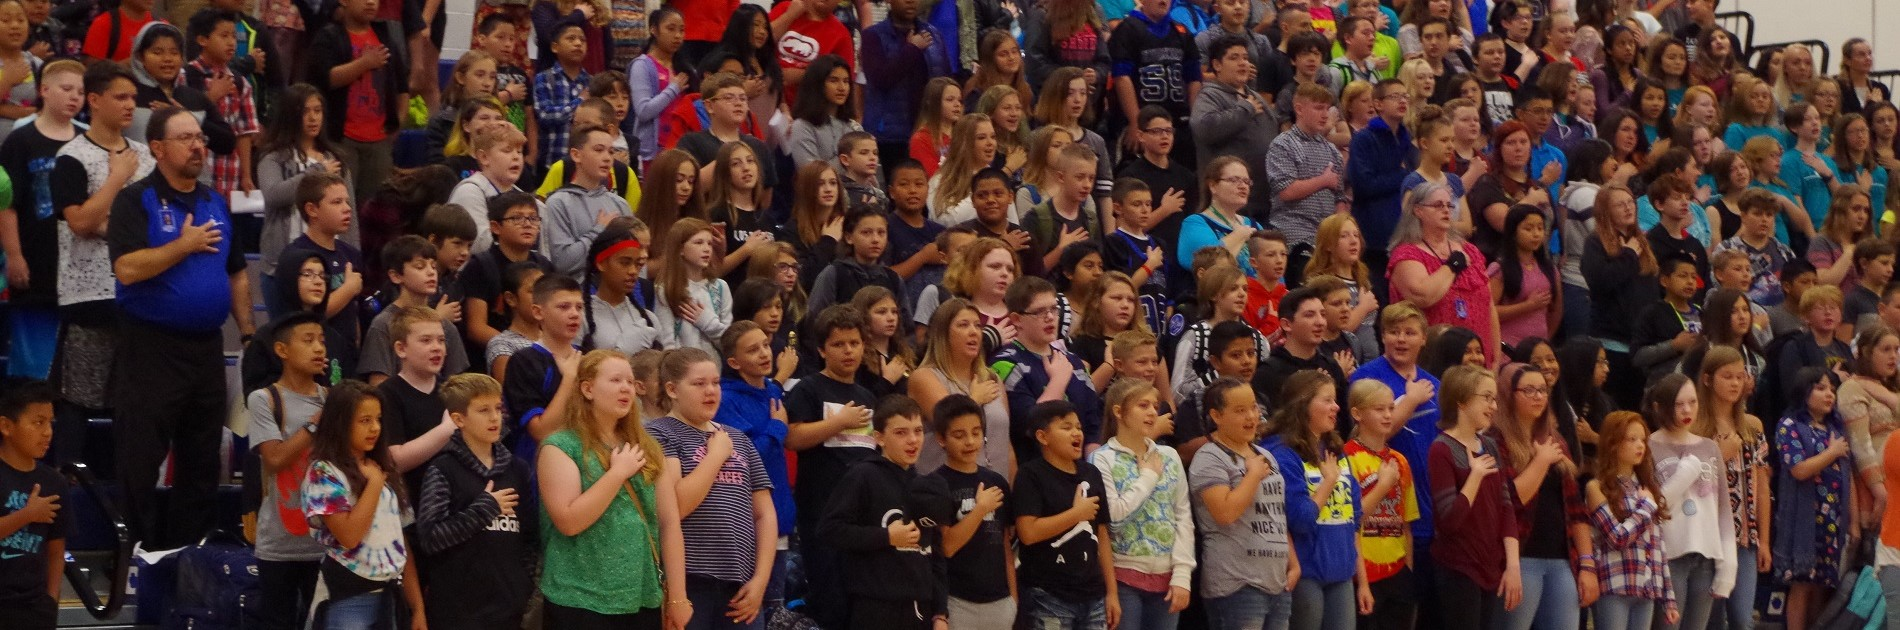 Hawkins students stand for the Pledge of Allegiance.